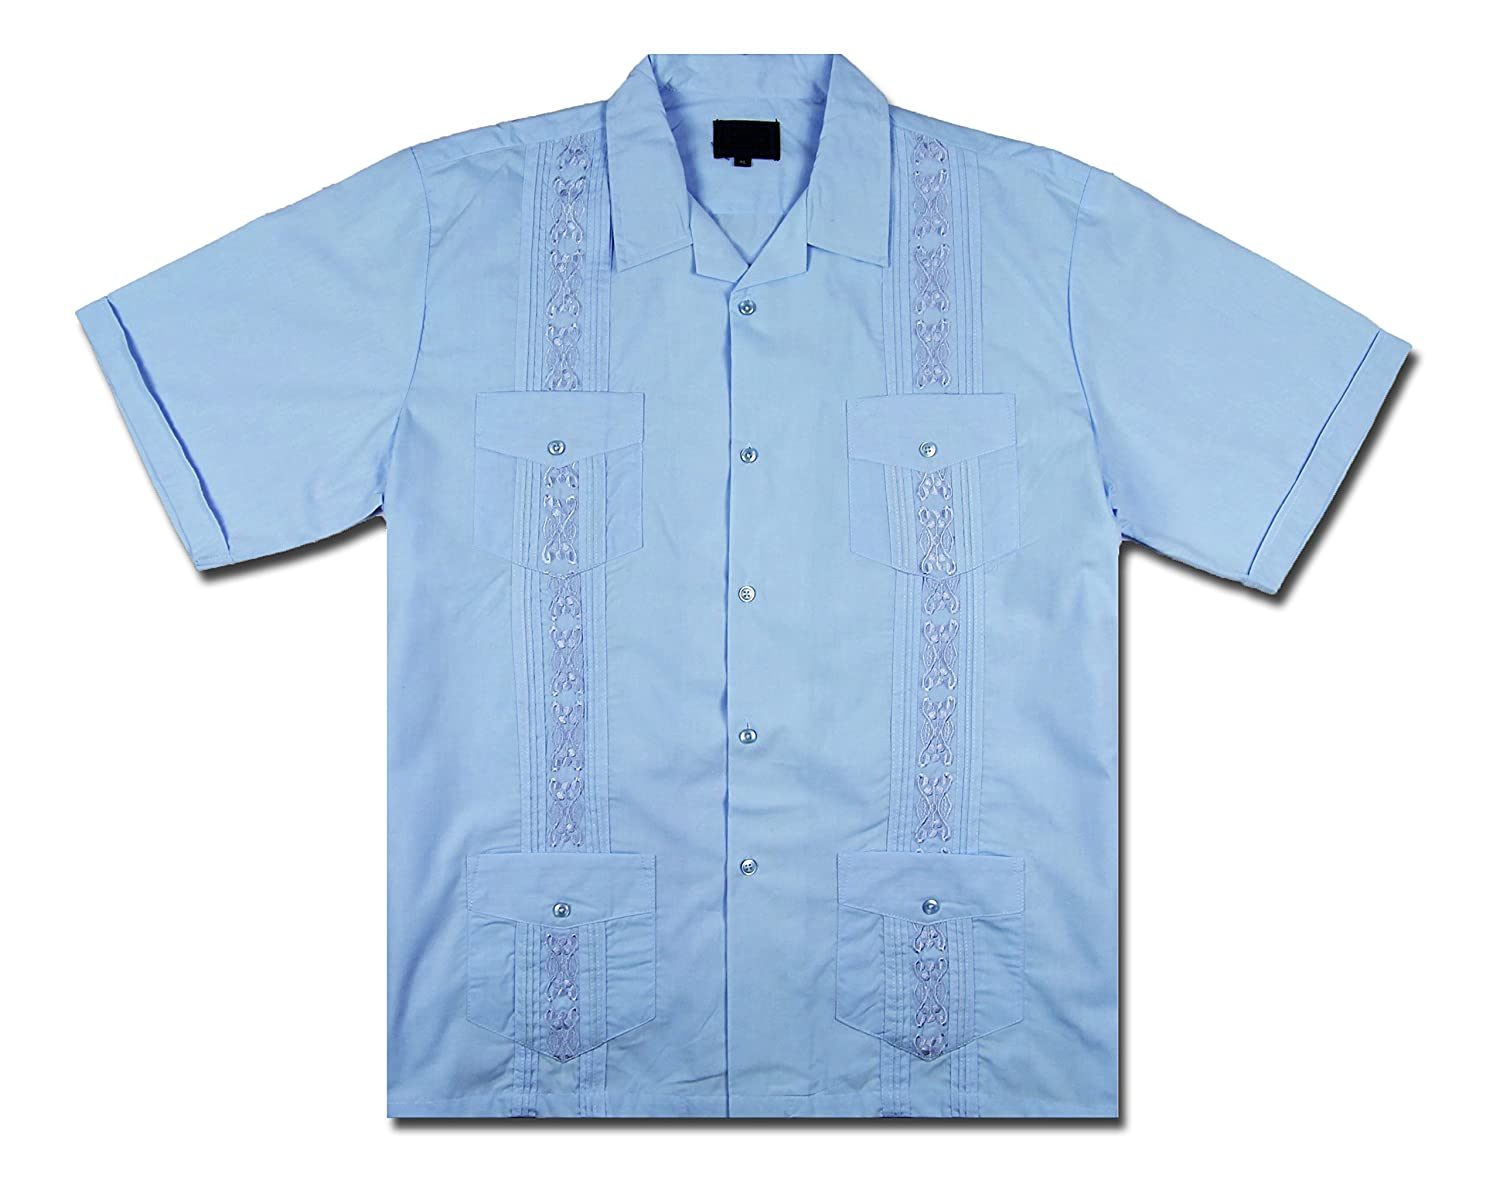 New Guayabera Kids Boys Cuban Latino Style Wedding Button Down Dress Shirt